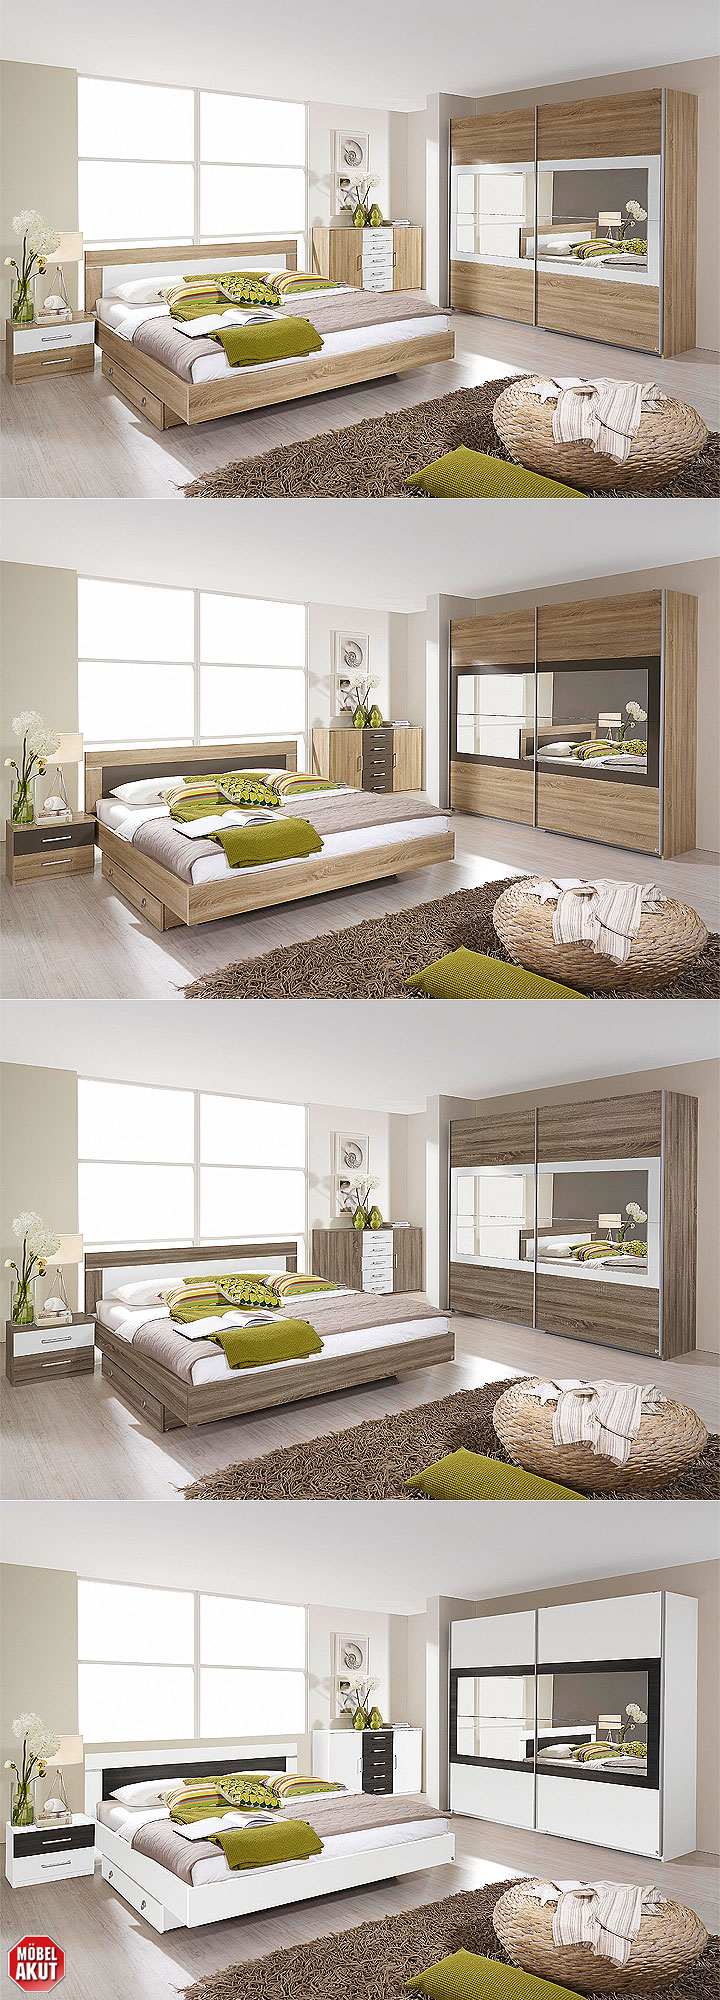 schwebet renschrank venlo sonoma eiche wei spiegel 226. Black Bedroom Furniture Sets. Home Design Ideas